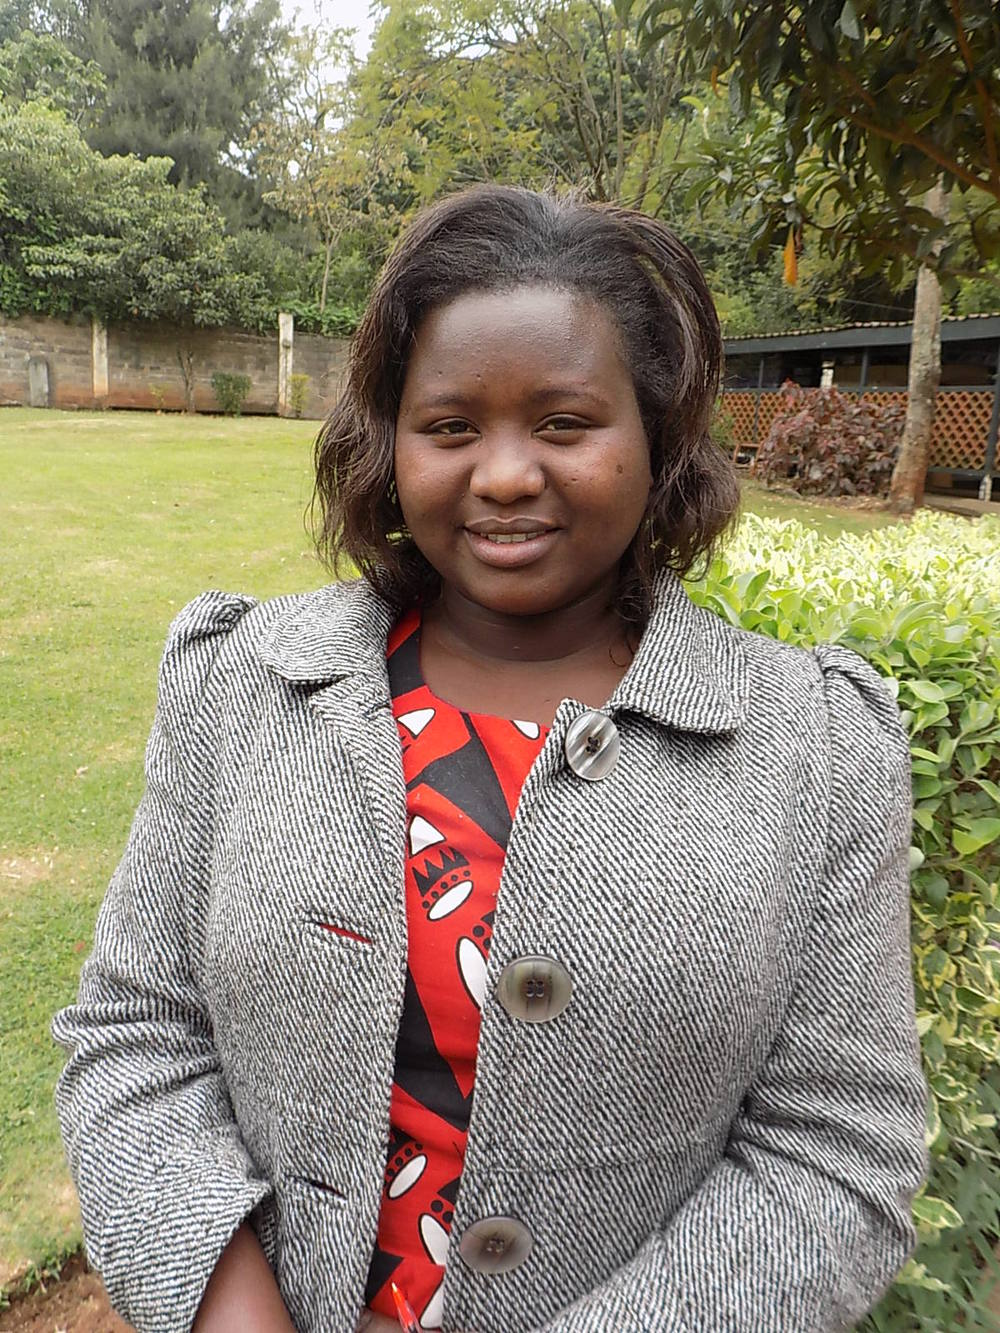 Elizabeth Jepngetich Limo, Level Four Teacher